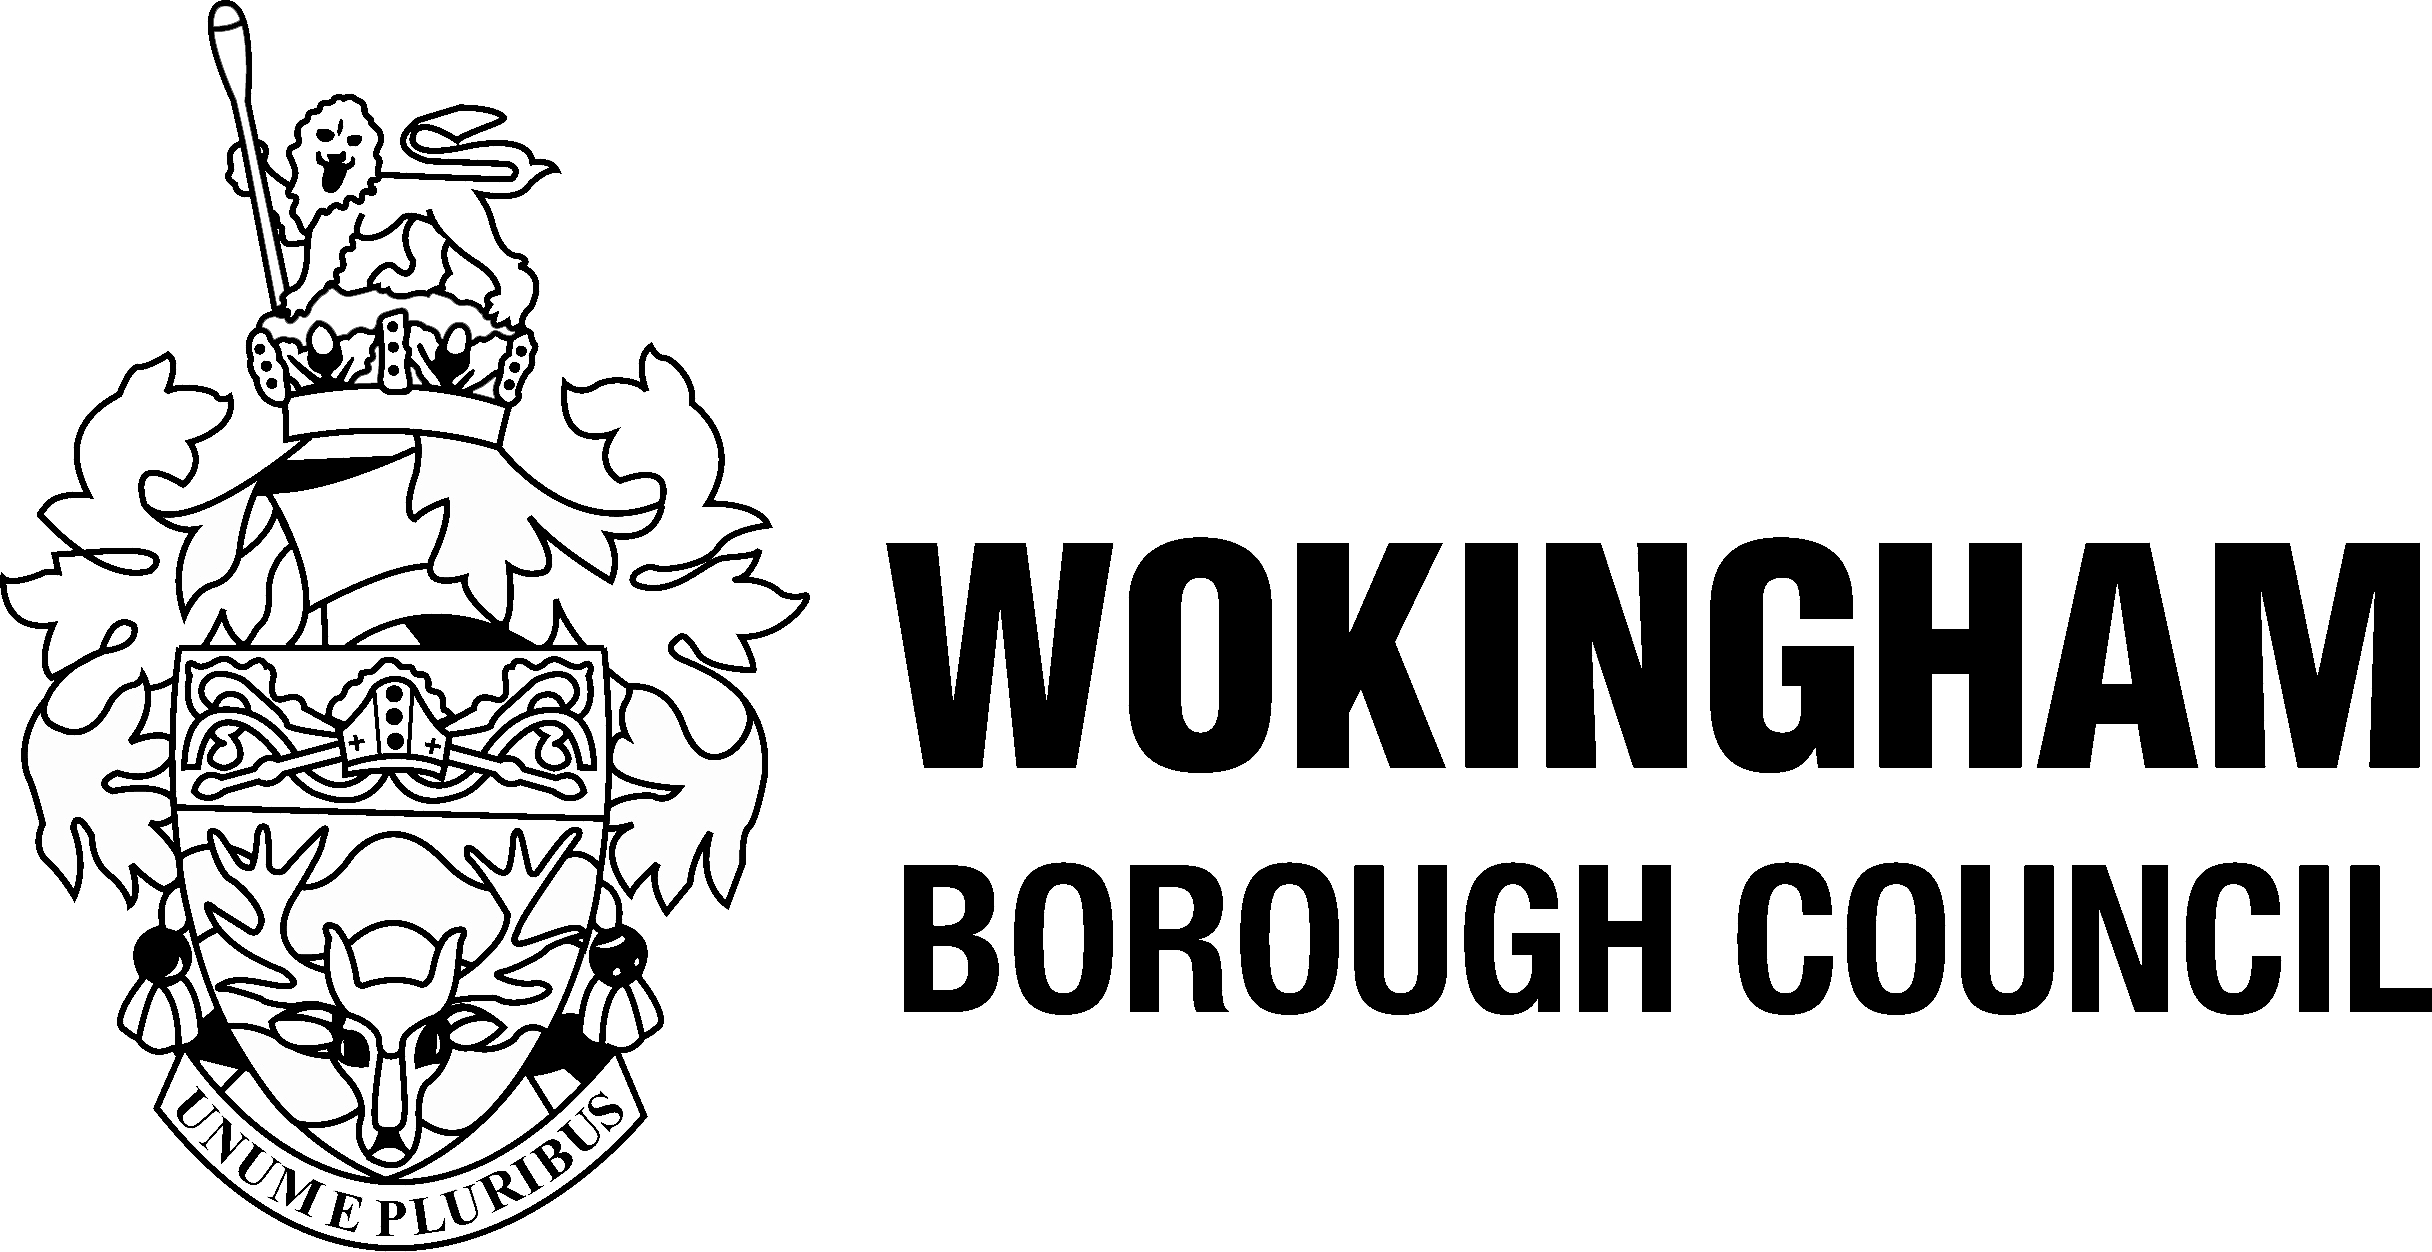 wokingham_borough_council_crest.png